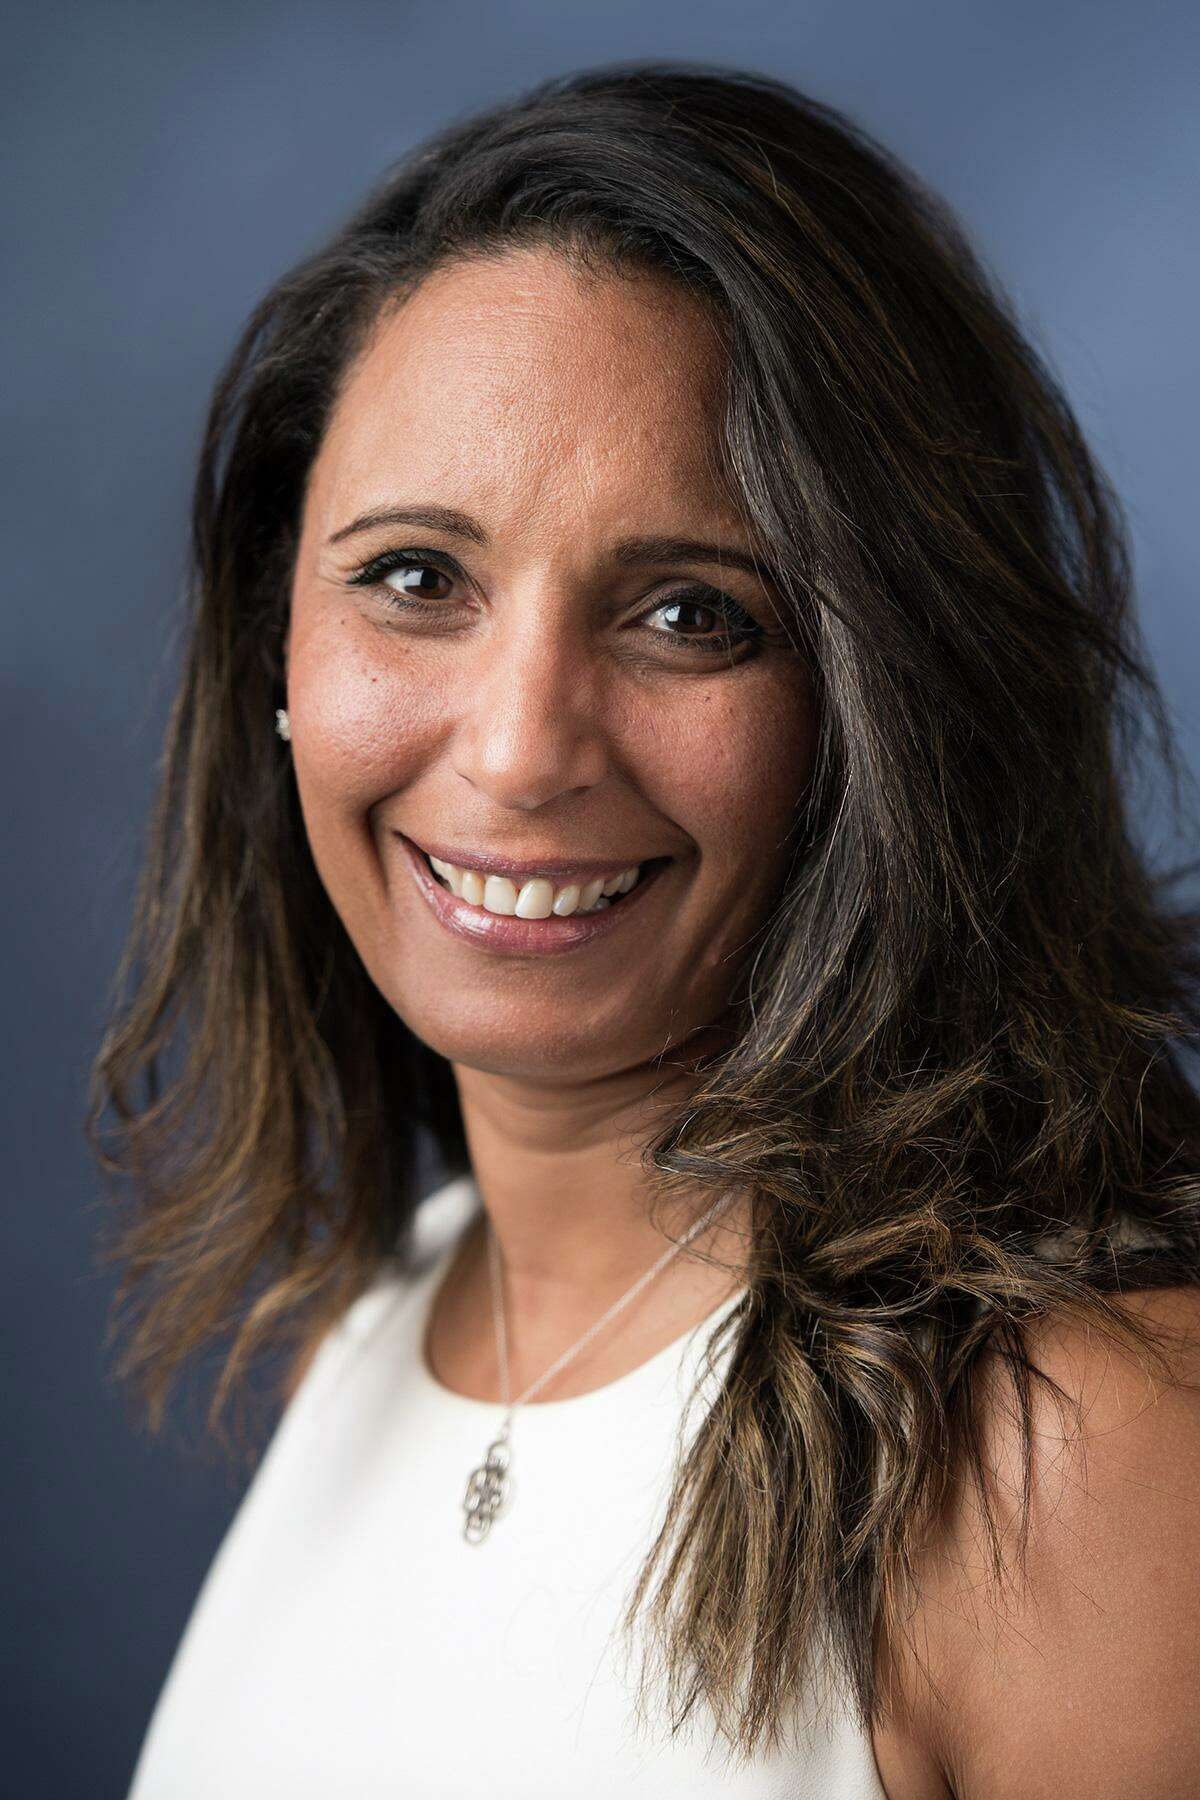 Rachida F. Parks, of Madison, associate professor of computer information systems in the School of Business at Quinnipiac University, has been named the 2020 recipient of the American Medical Informatics Association's Diana Forsythe Award, which was presented virtually at the AMIA's annual symposium, Nov. 14-18.